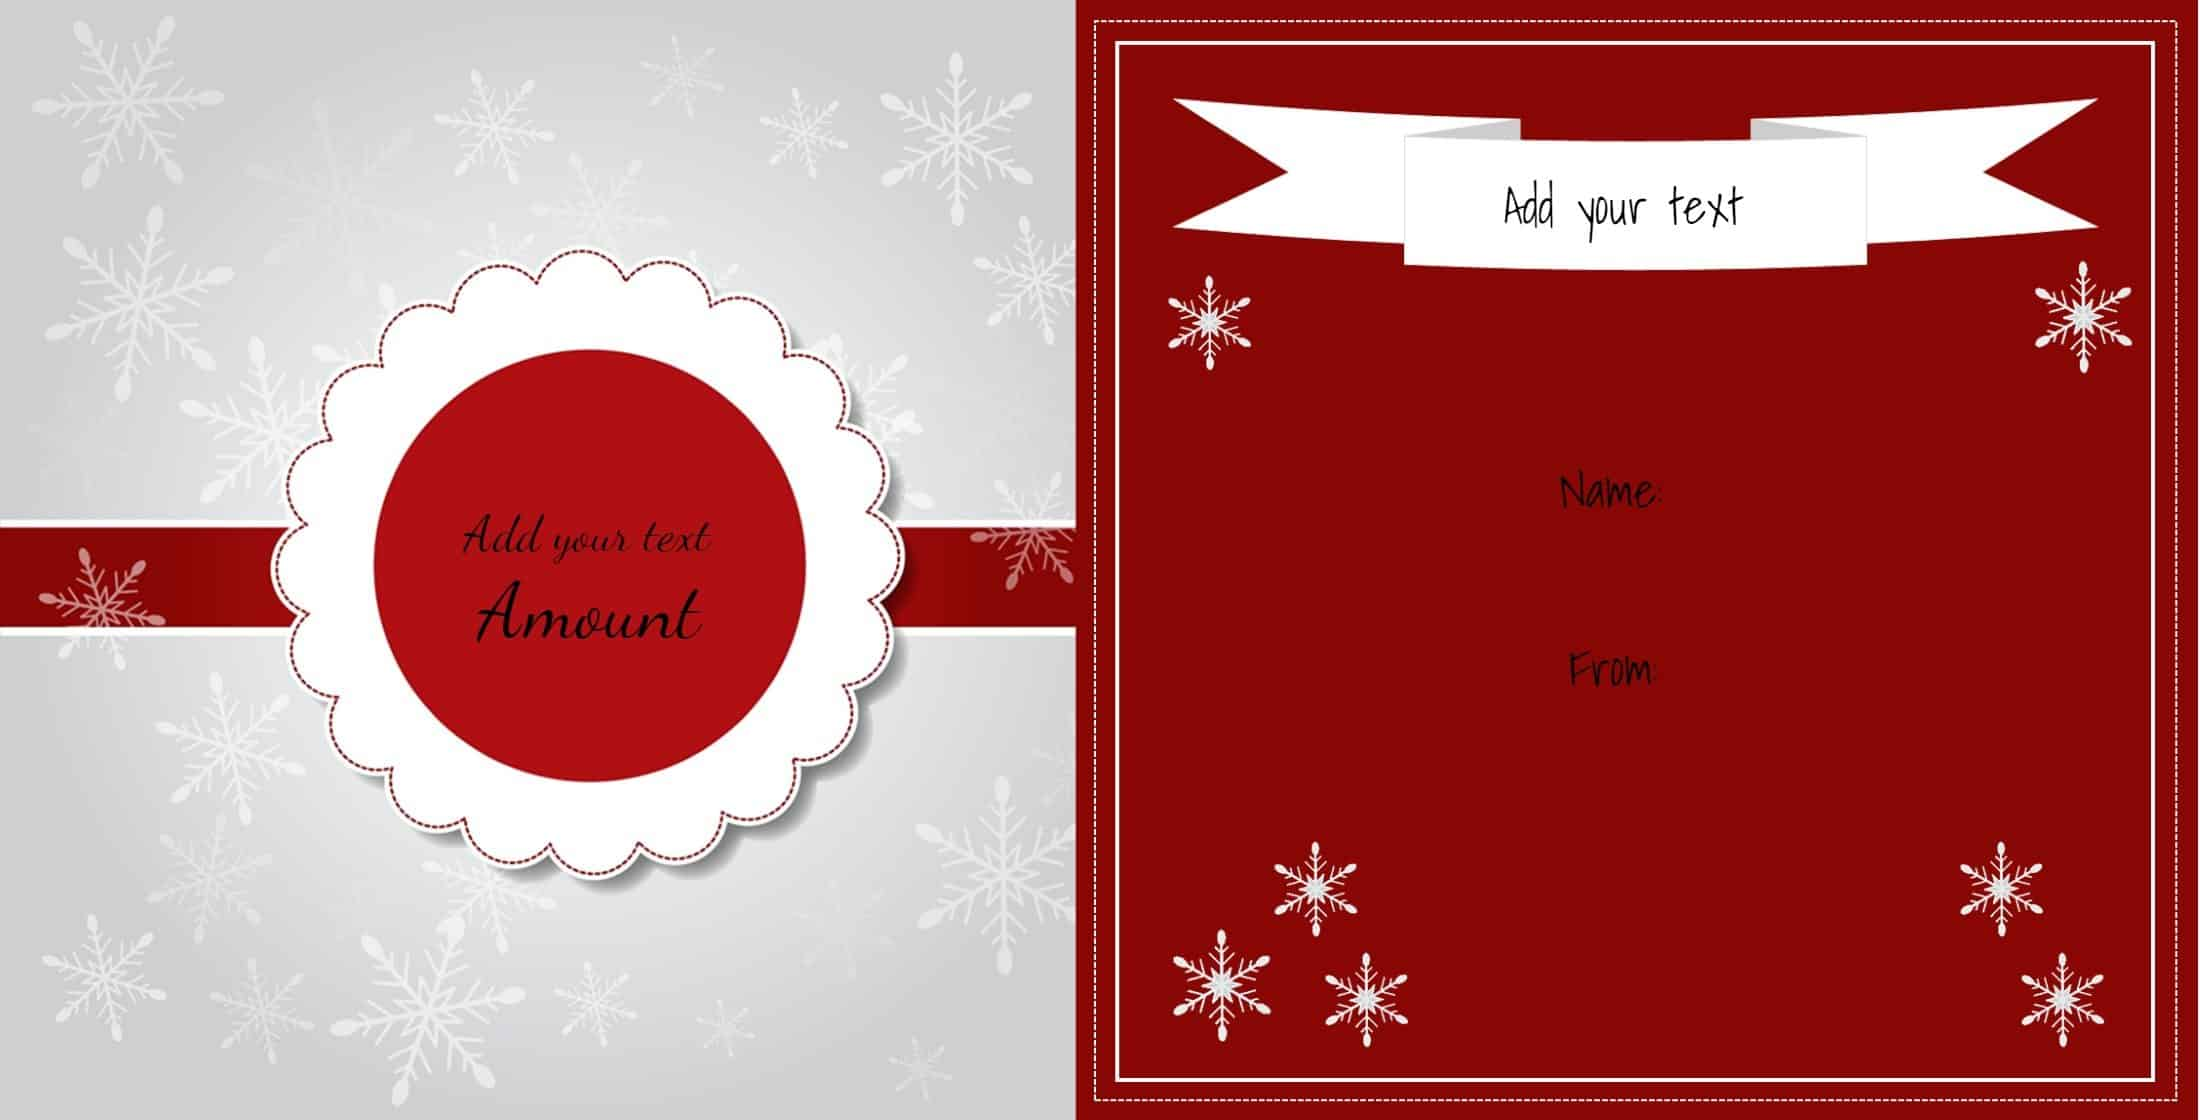 Free christmas gift certificate template customize online download christmas gift certificate alramifo Choice Image